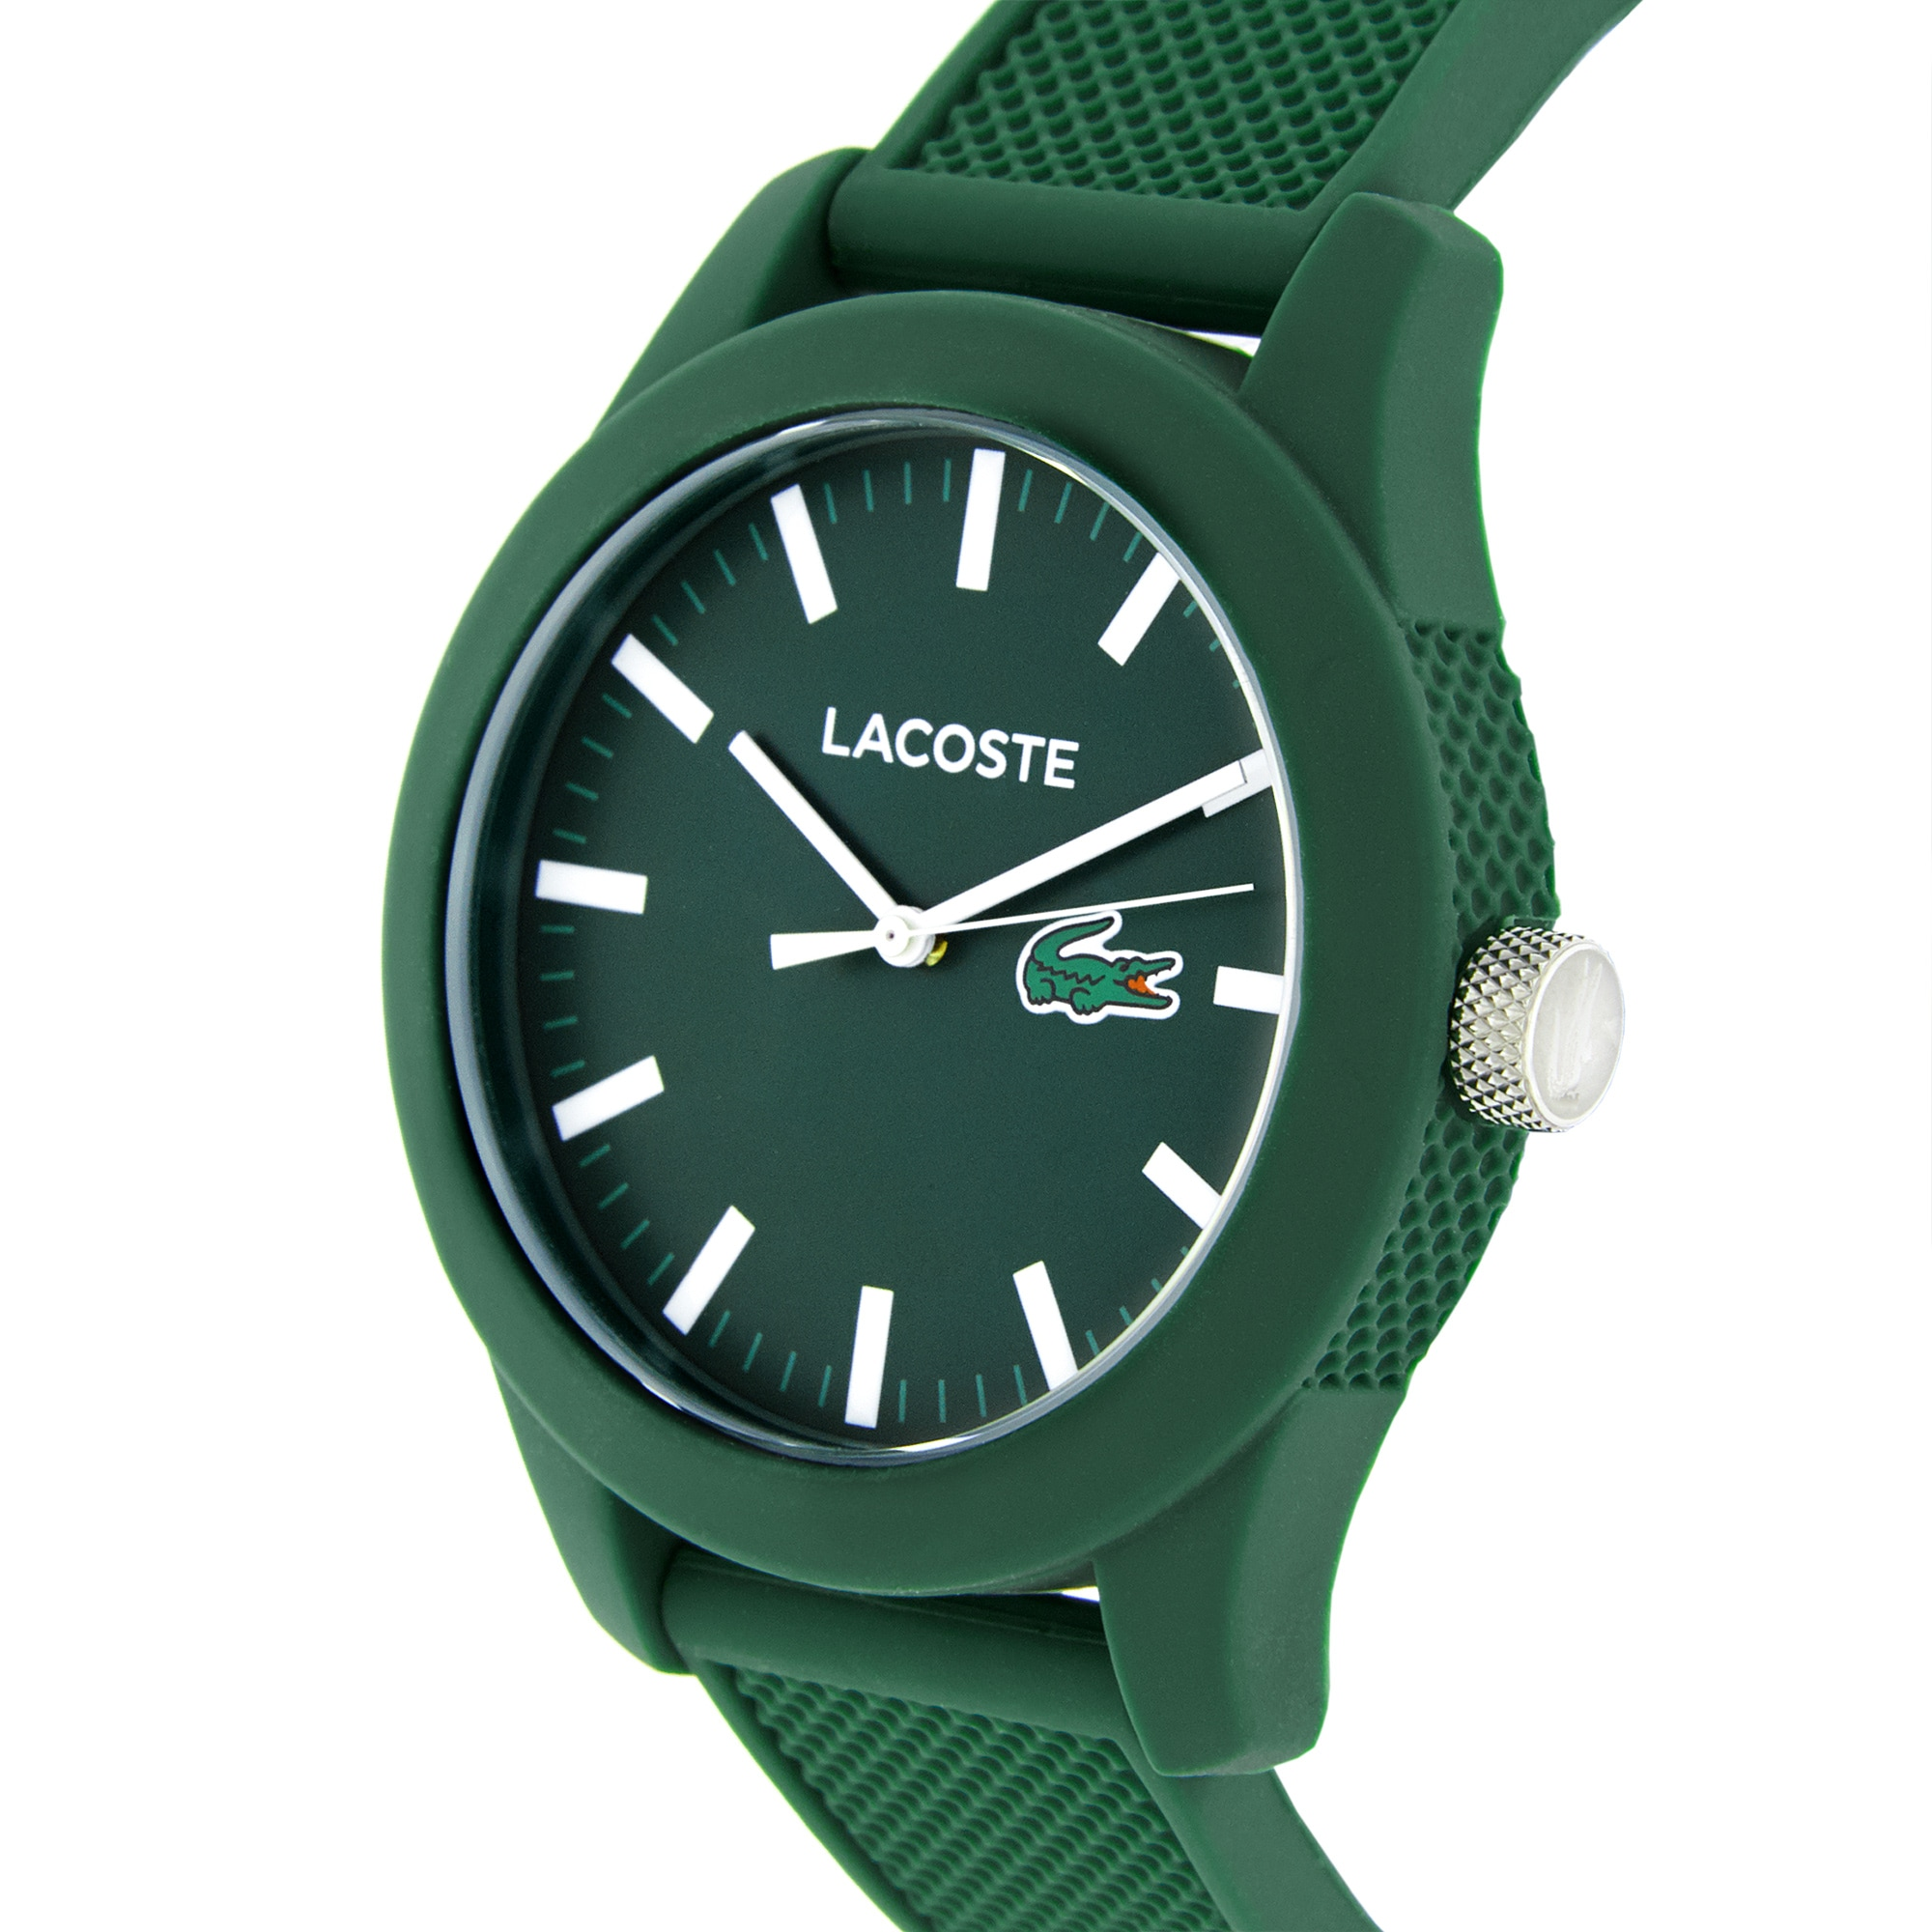 Watch Lacoste.12.12 - silicone strap